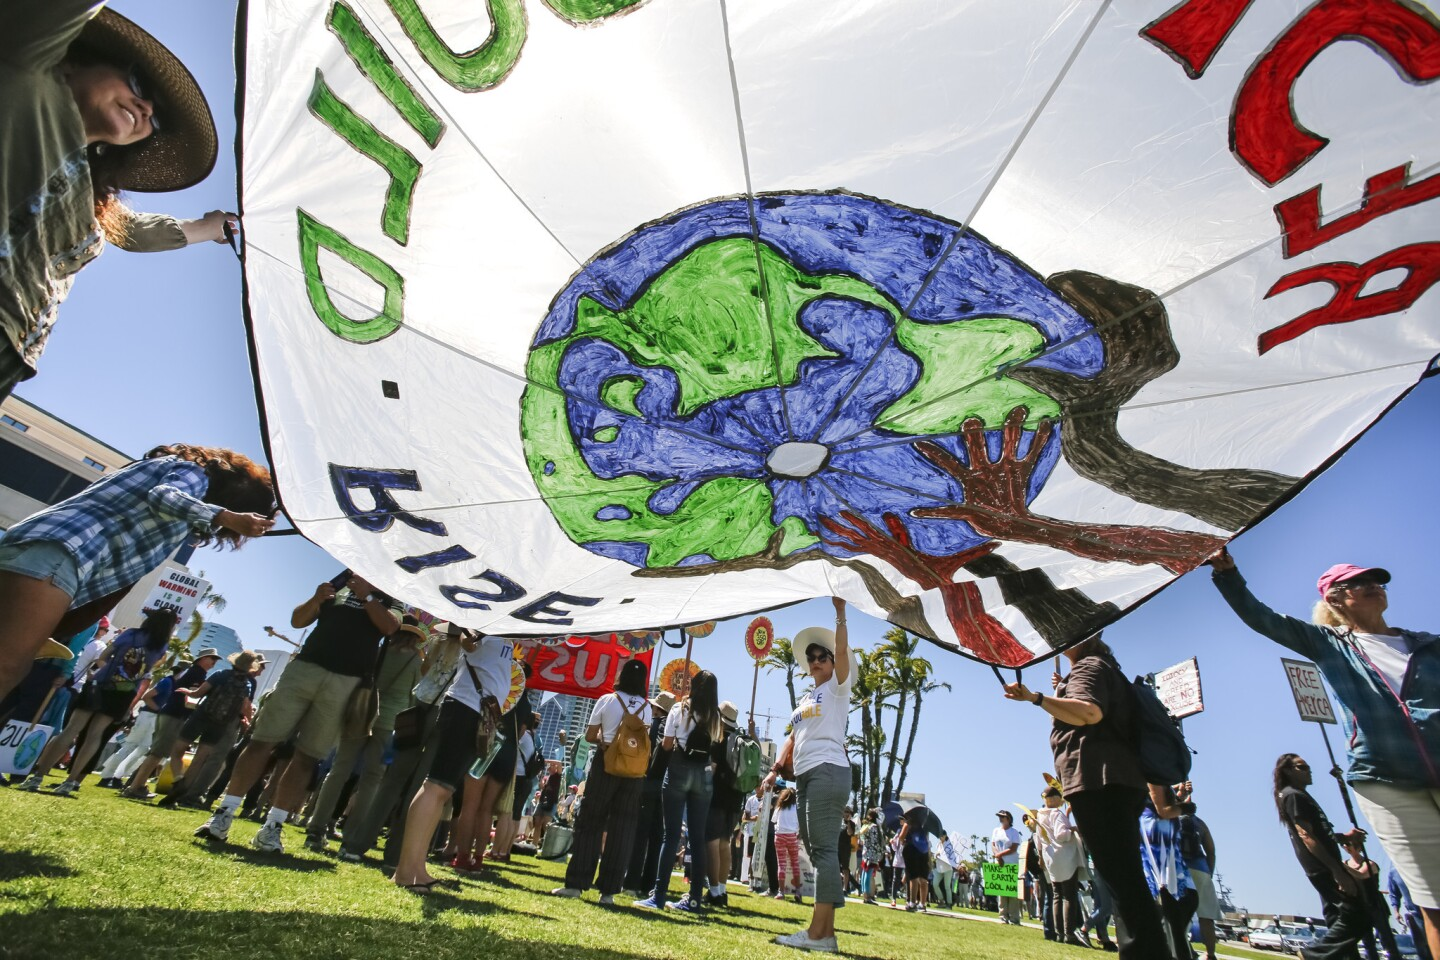 About 5,000 people participated in the People's Climate March, San Diego, which started on the steps of the San Diego County Administration Building with speeches and music before marchers took to the nearby streets to voice their opinions and concern over climate change and the Trump Administration's opposition to it. |